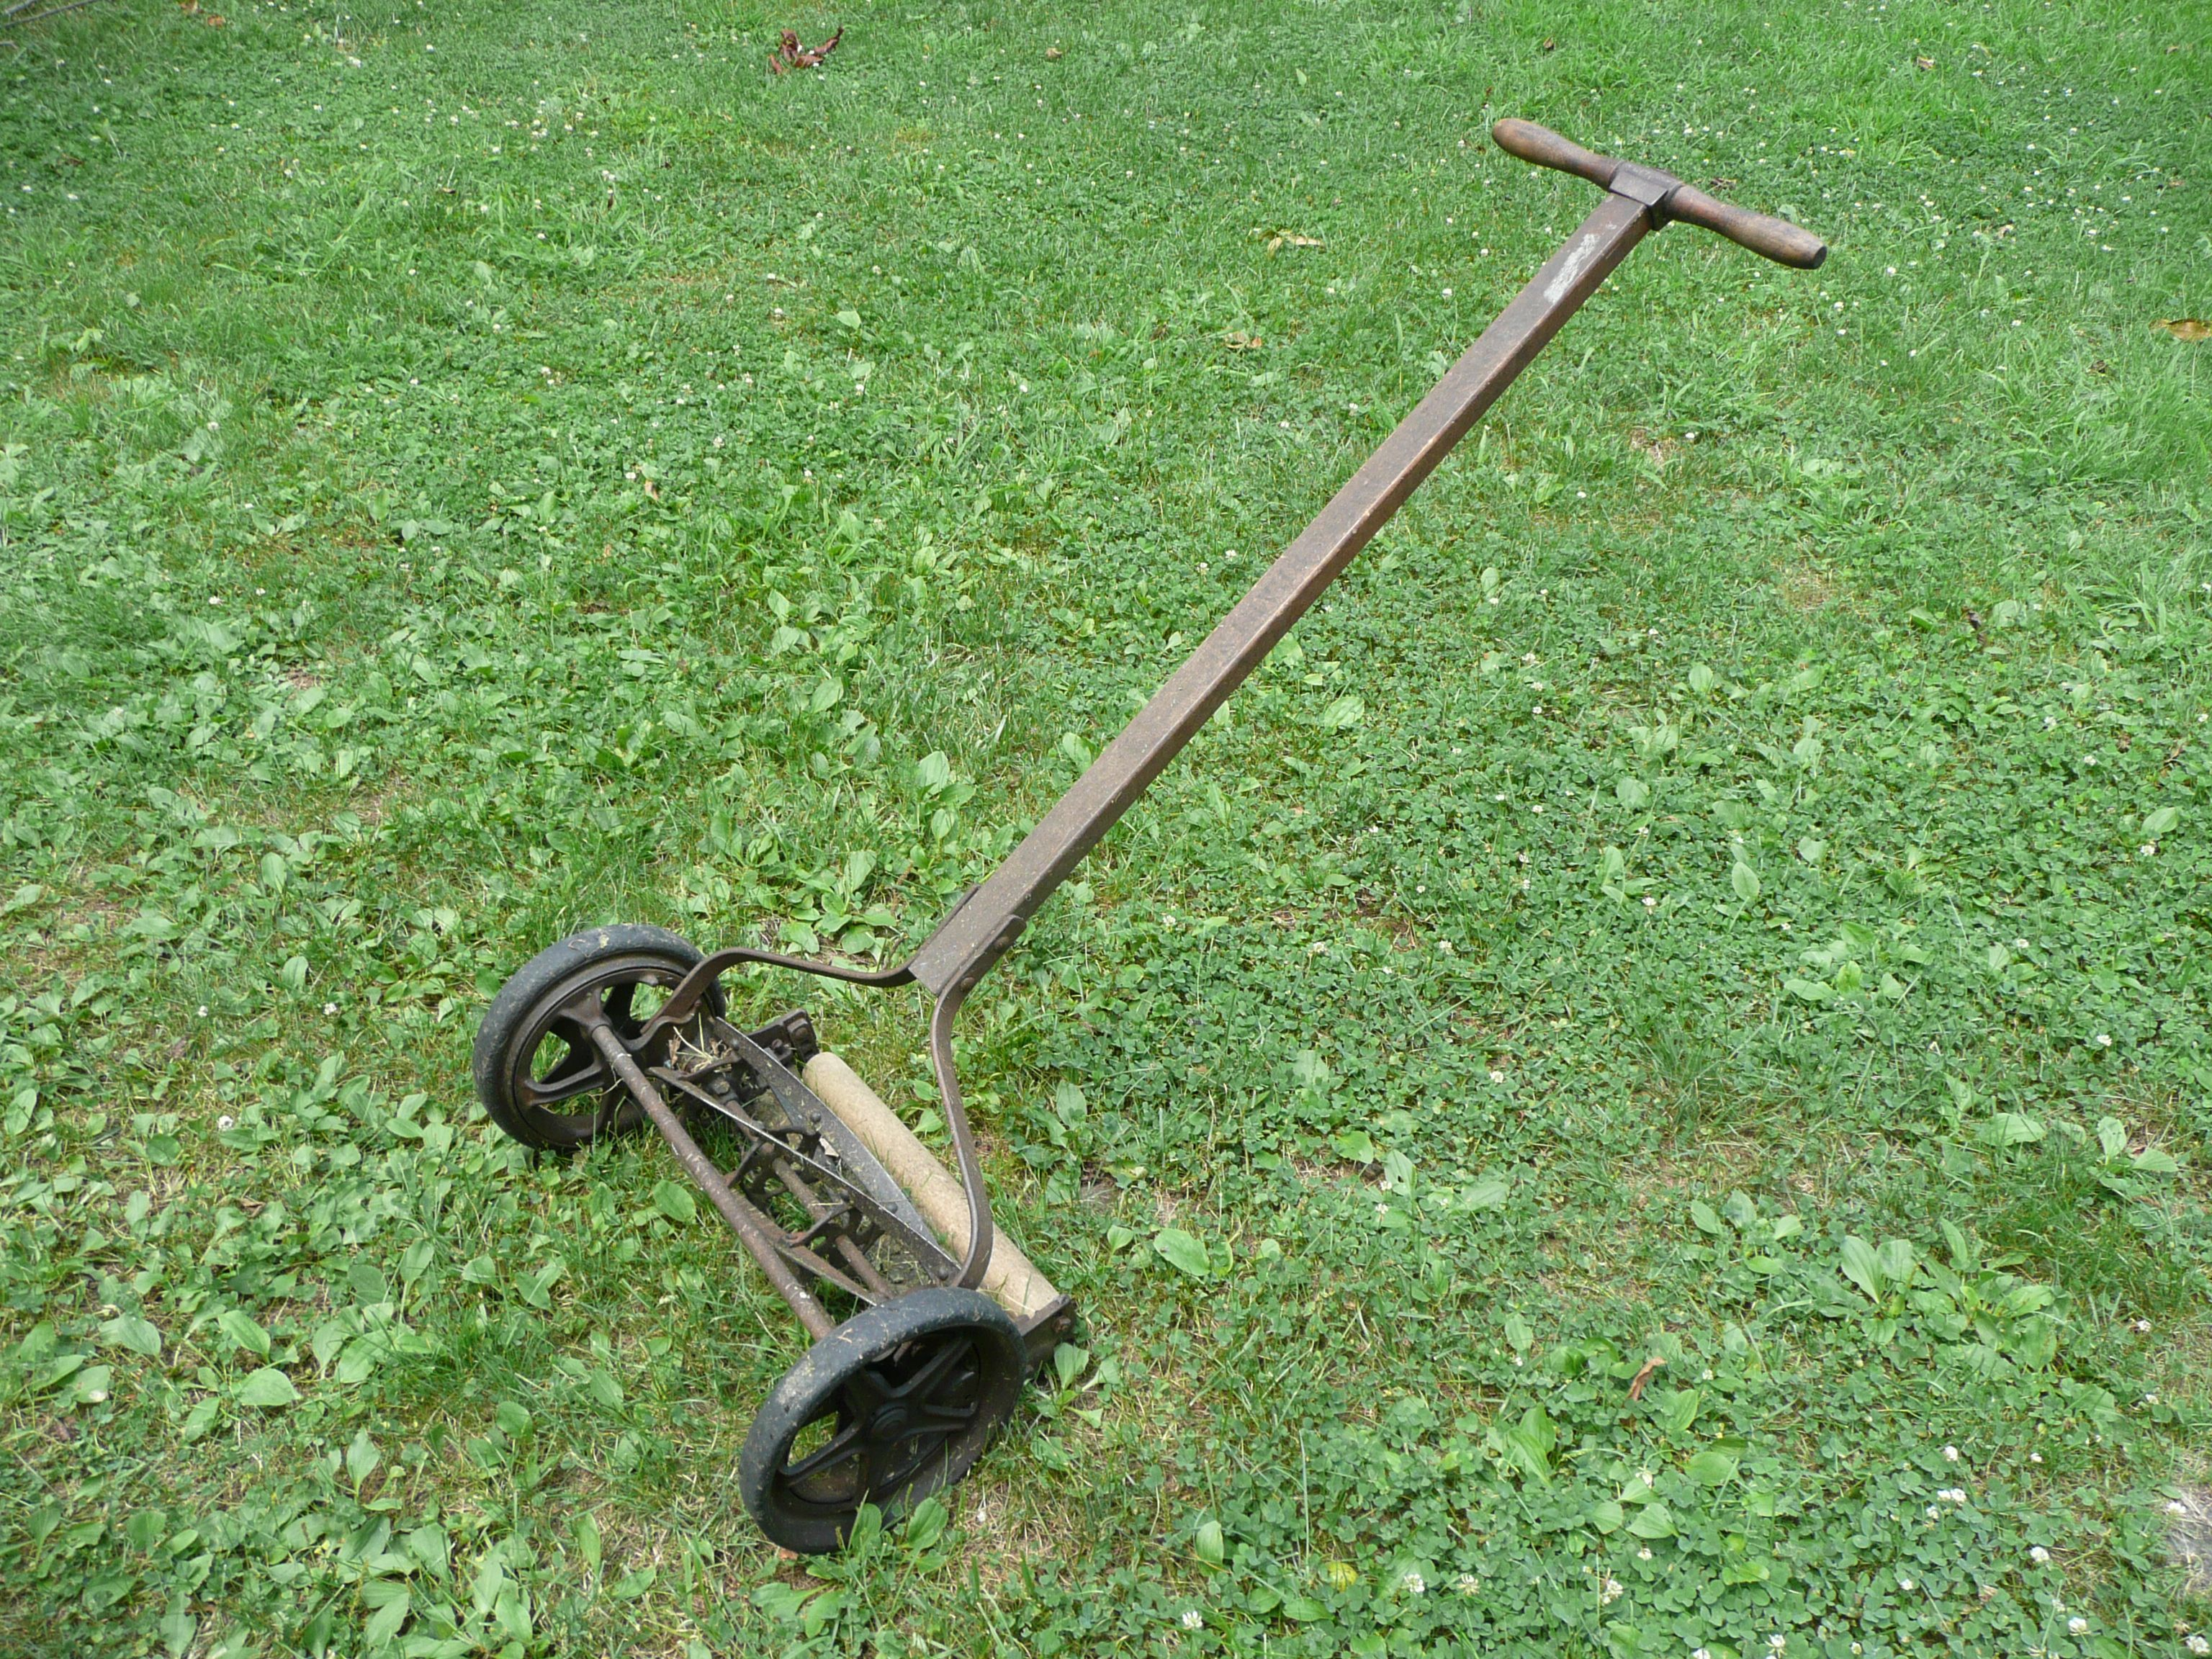 Mowed yards with one like this